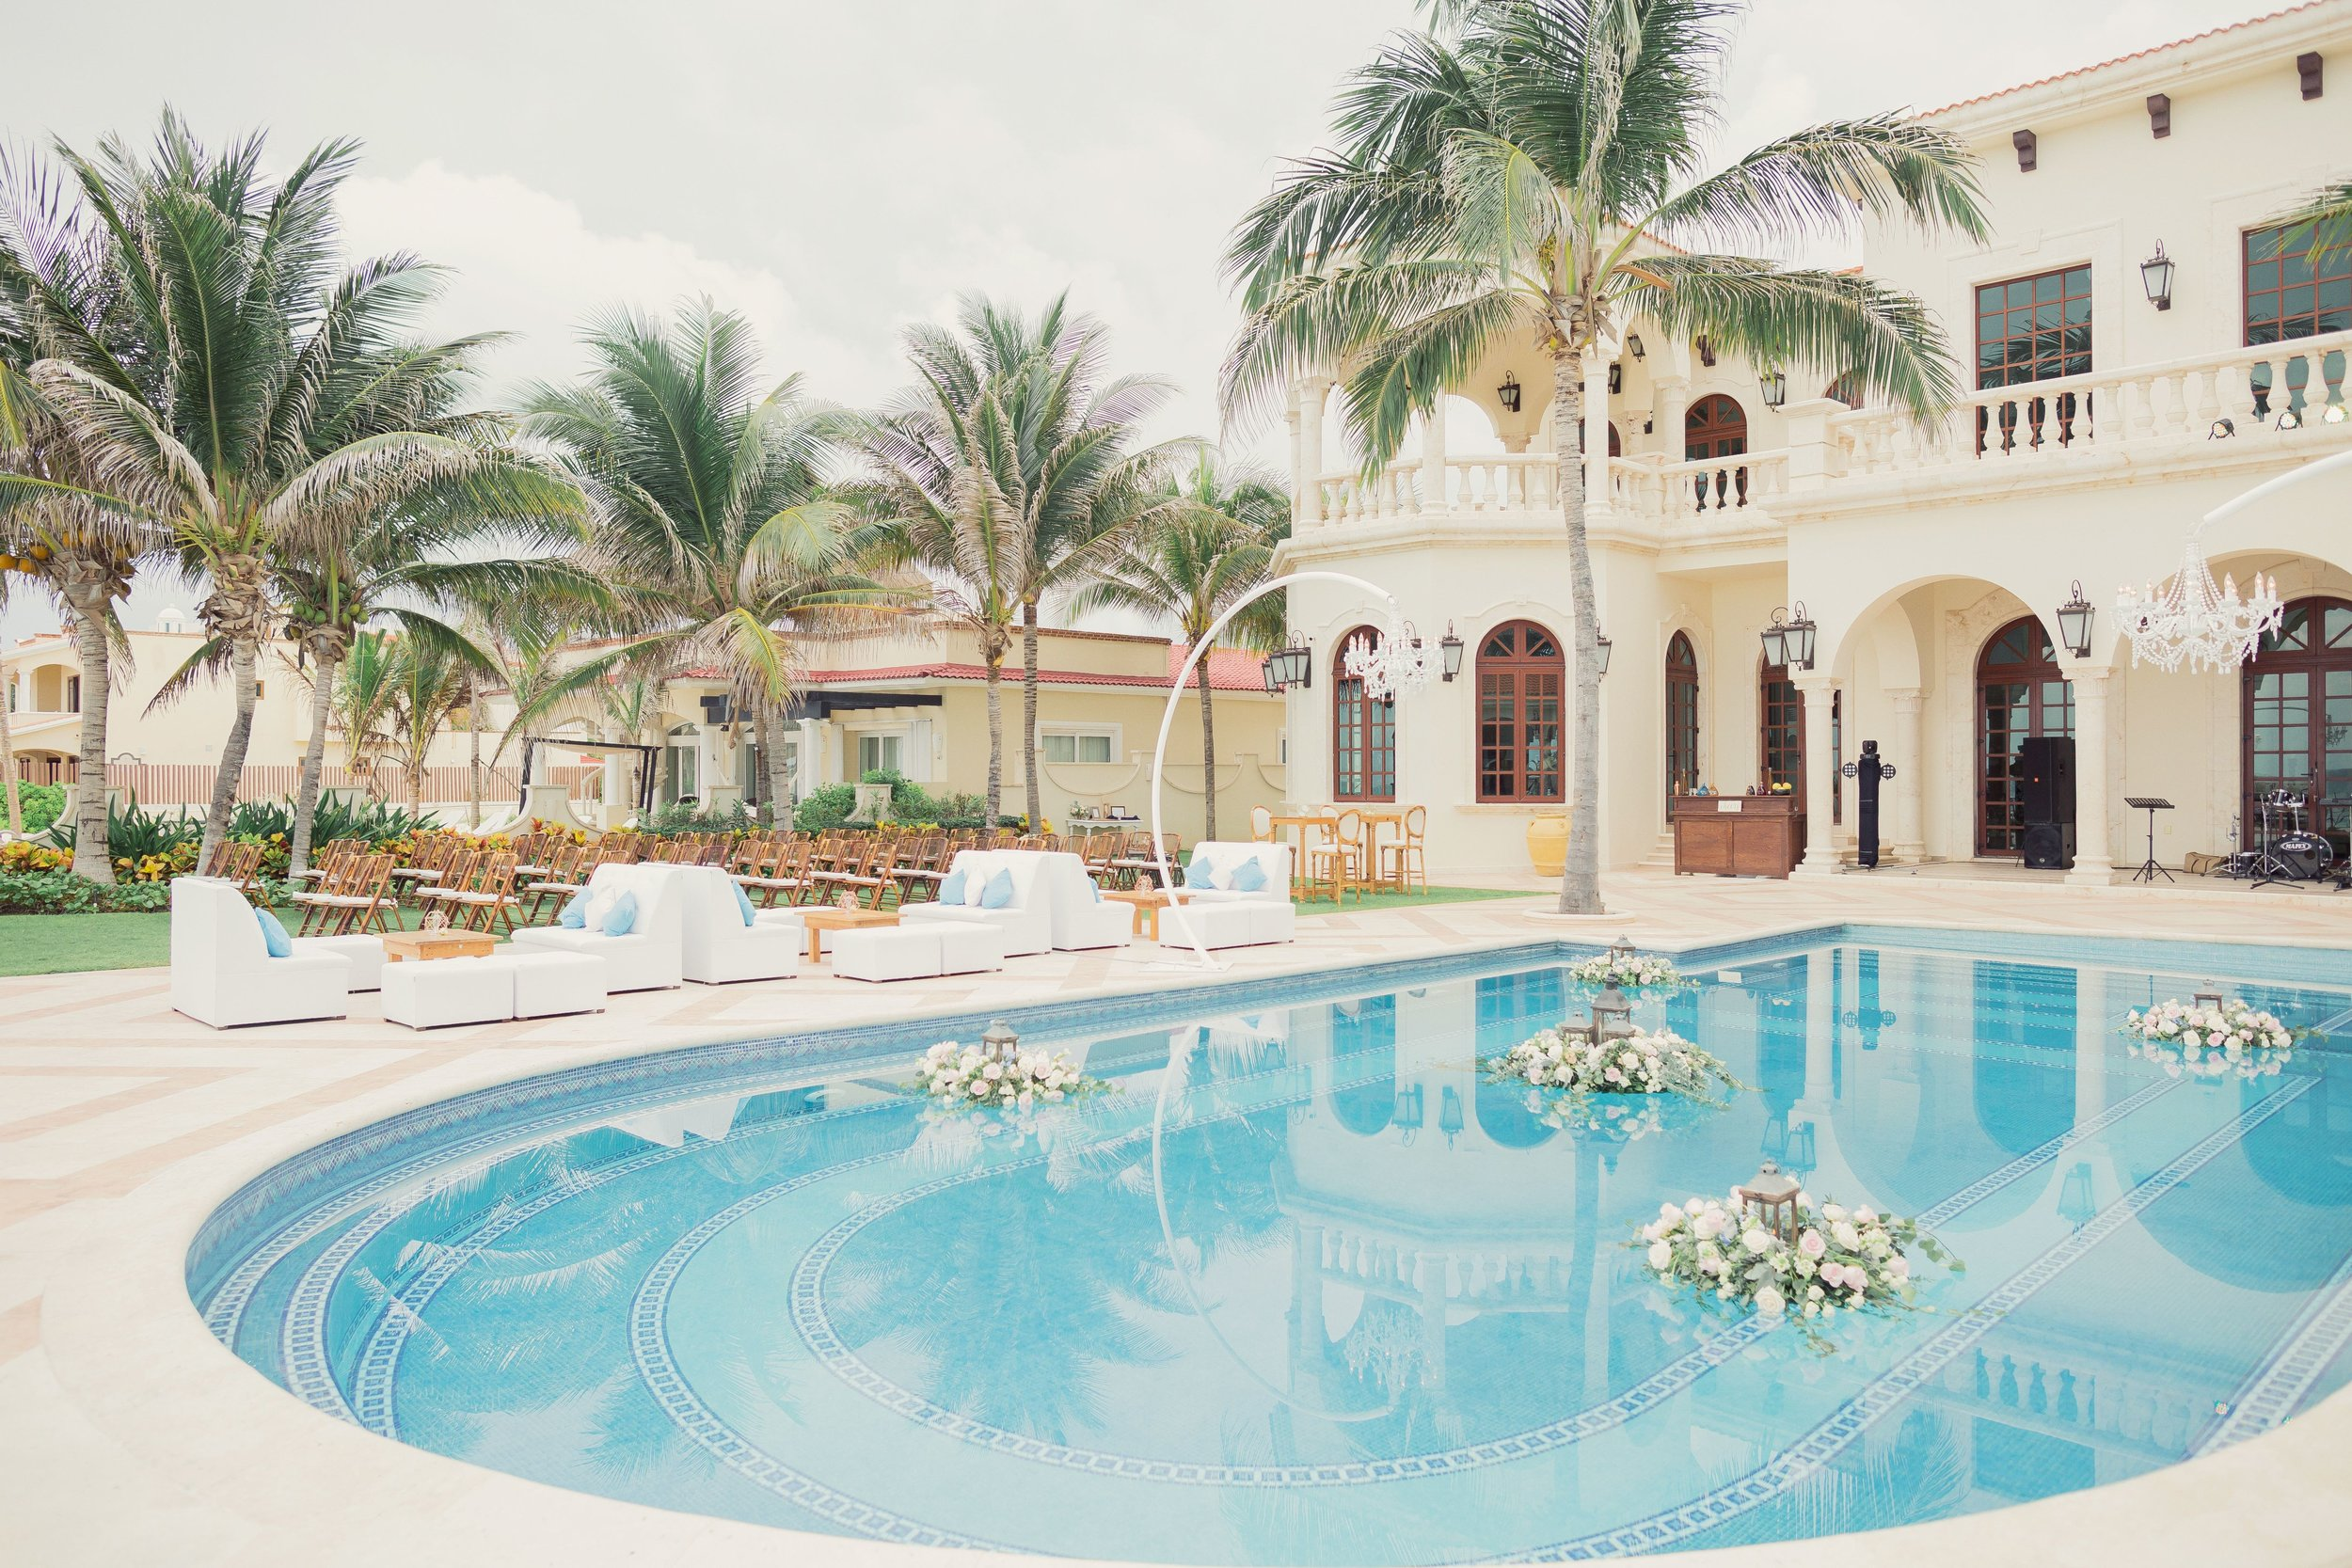 cancun-wedding-venue-villa-la-joya-84 copy-websize.jpg